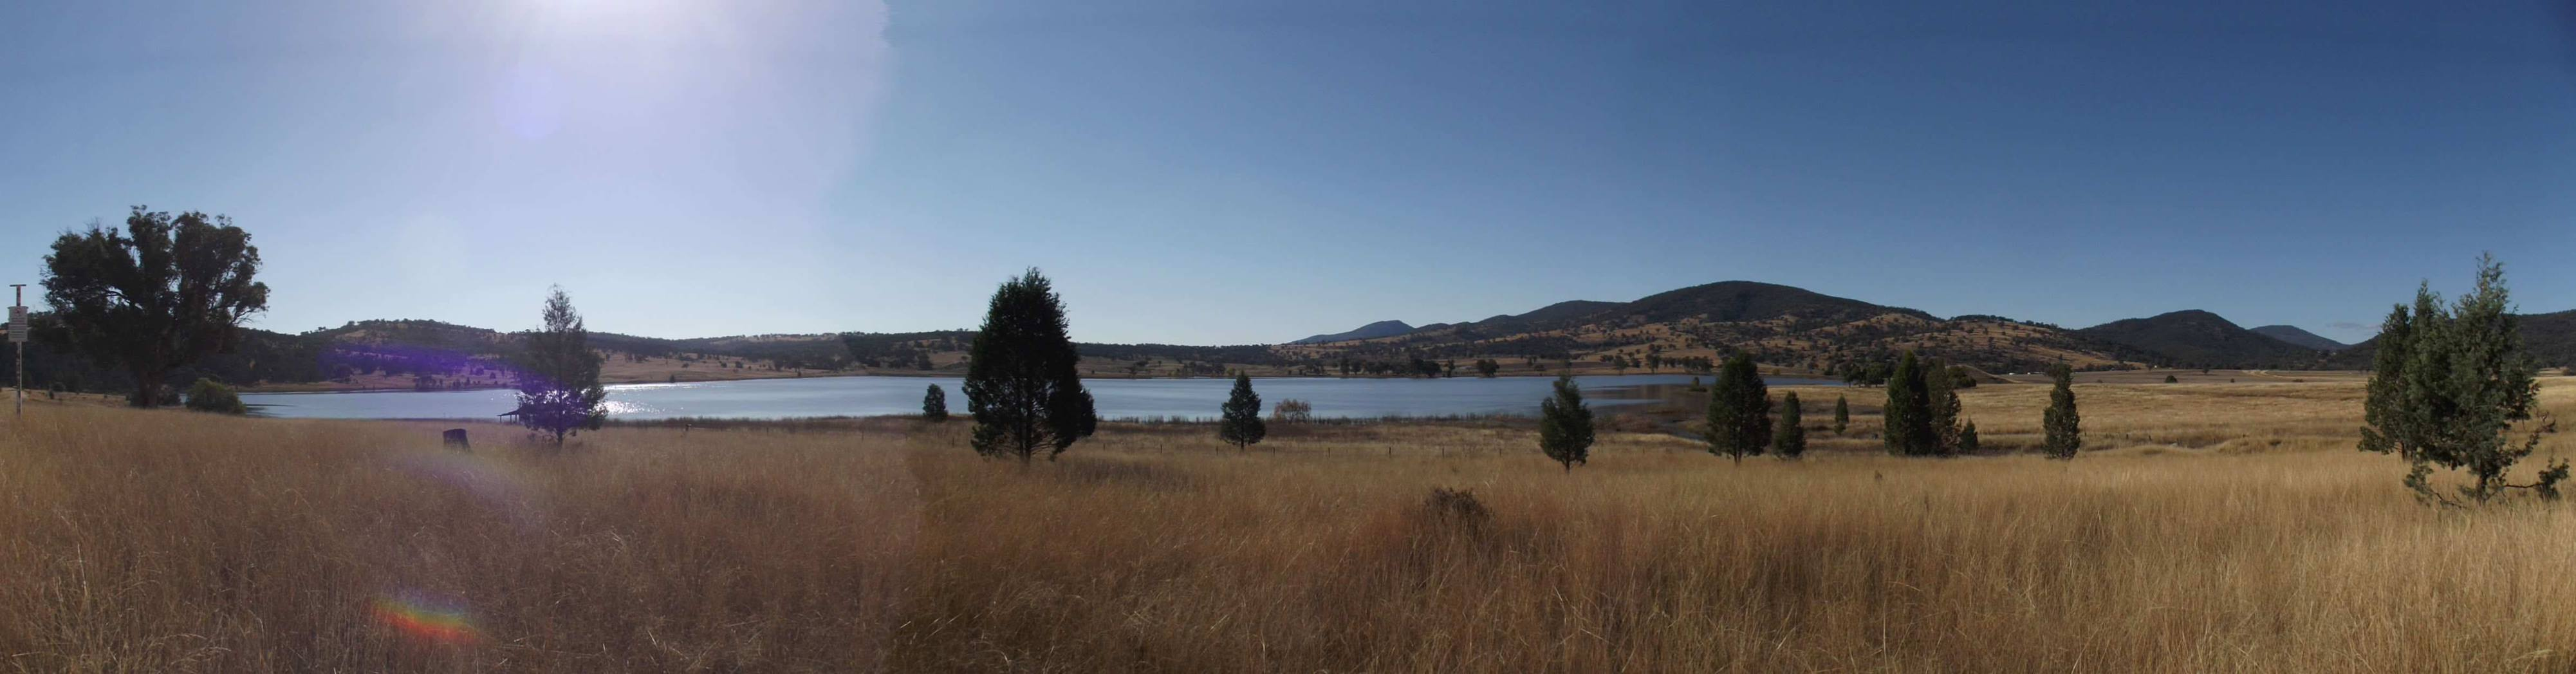 Quipoly Dam, by Gordon, from Liverpool Plains Shire